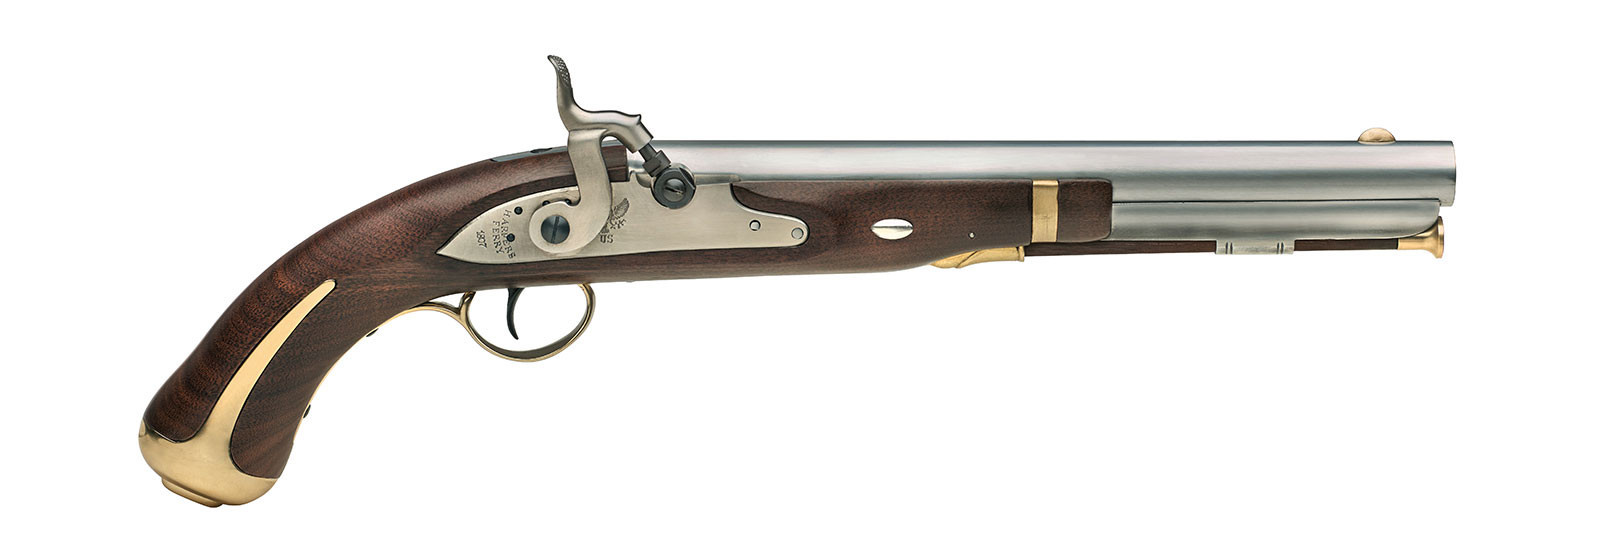 Harper's Ferry Conversion Pistol